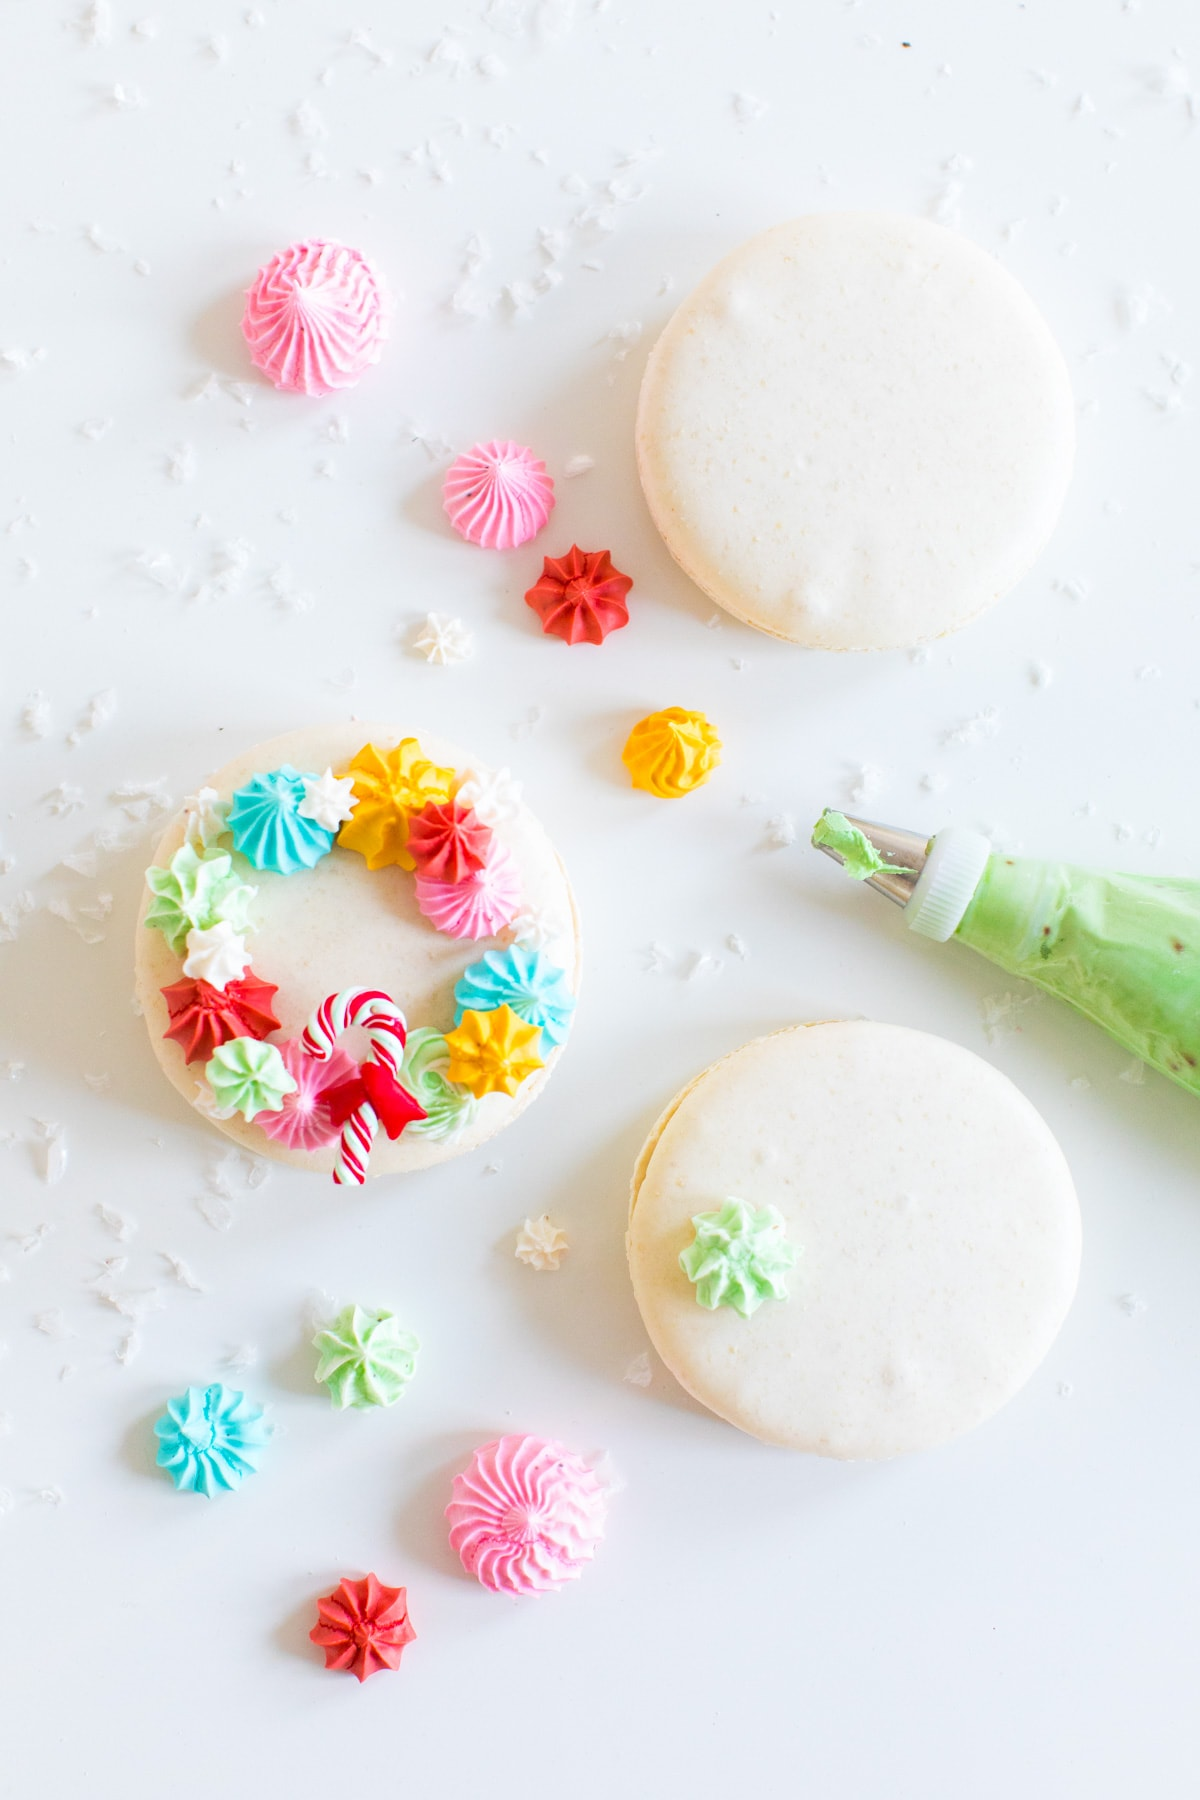 piping meringues - How to Make Holiday Wreath Meringue Macarons by top Houston lifestyle blogger Ashley Rose of Sugar & Cloth #holiday #cookies #meringues #wreath #christmas #ideas